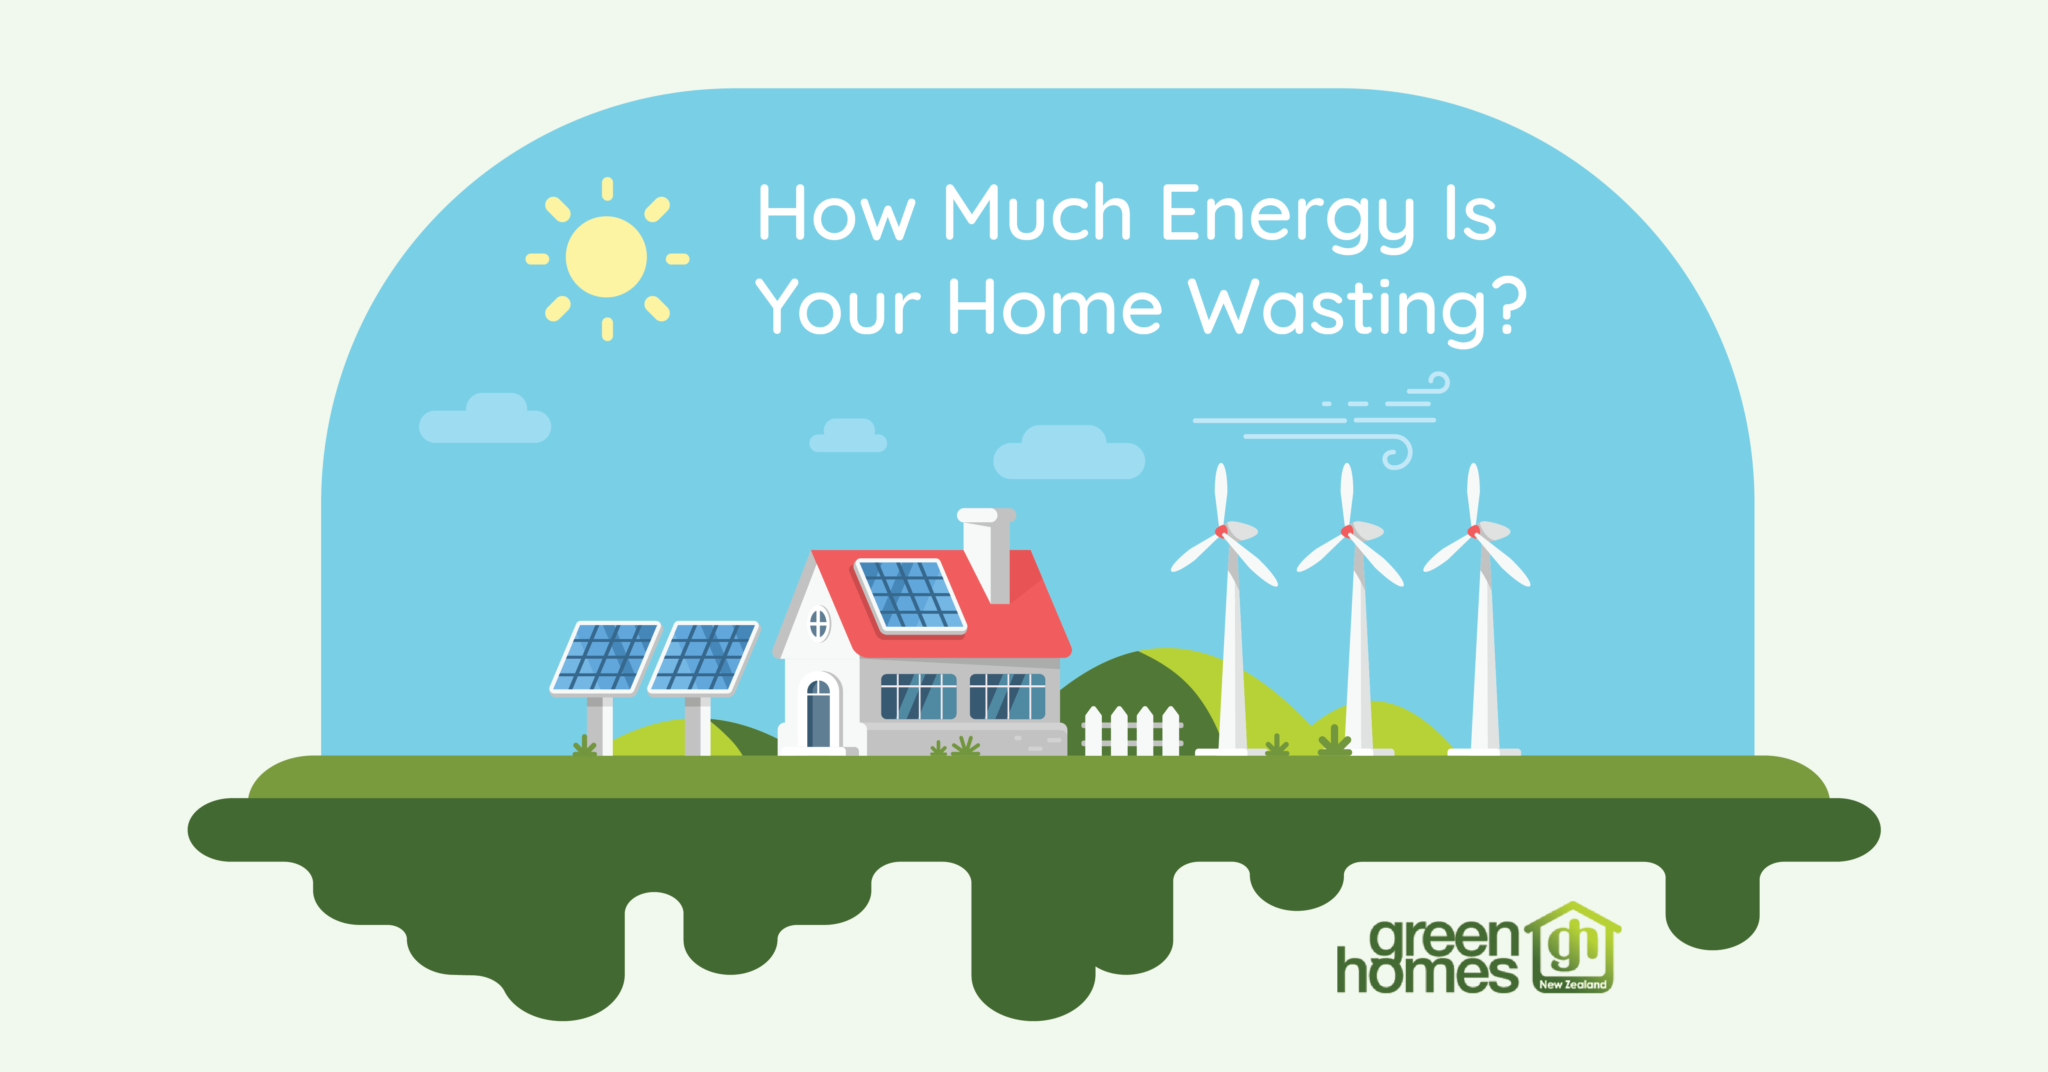 How Much Energy Is Your Home Wasting?